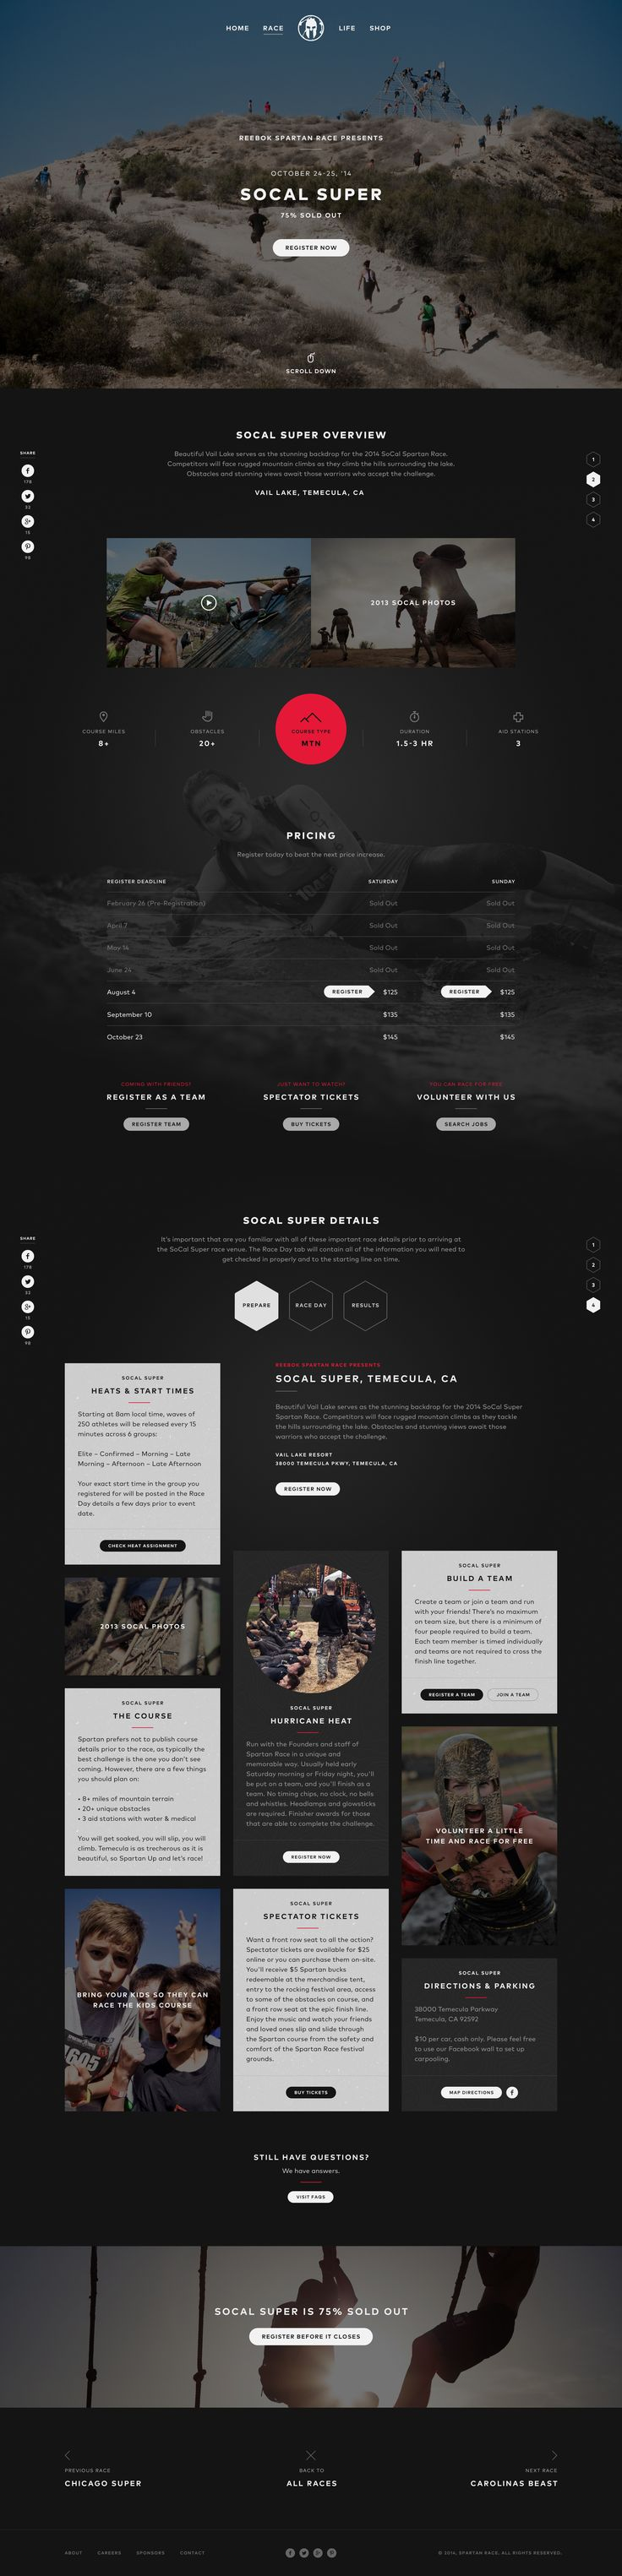 Social Super | #webdesign #it #web #design #layout #userinterface #website #webdesign repinned by www.BlickeDeeler.de | Visit our website www.blickedeeler.de/leistungen/webdesign